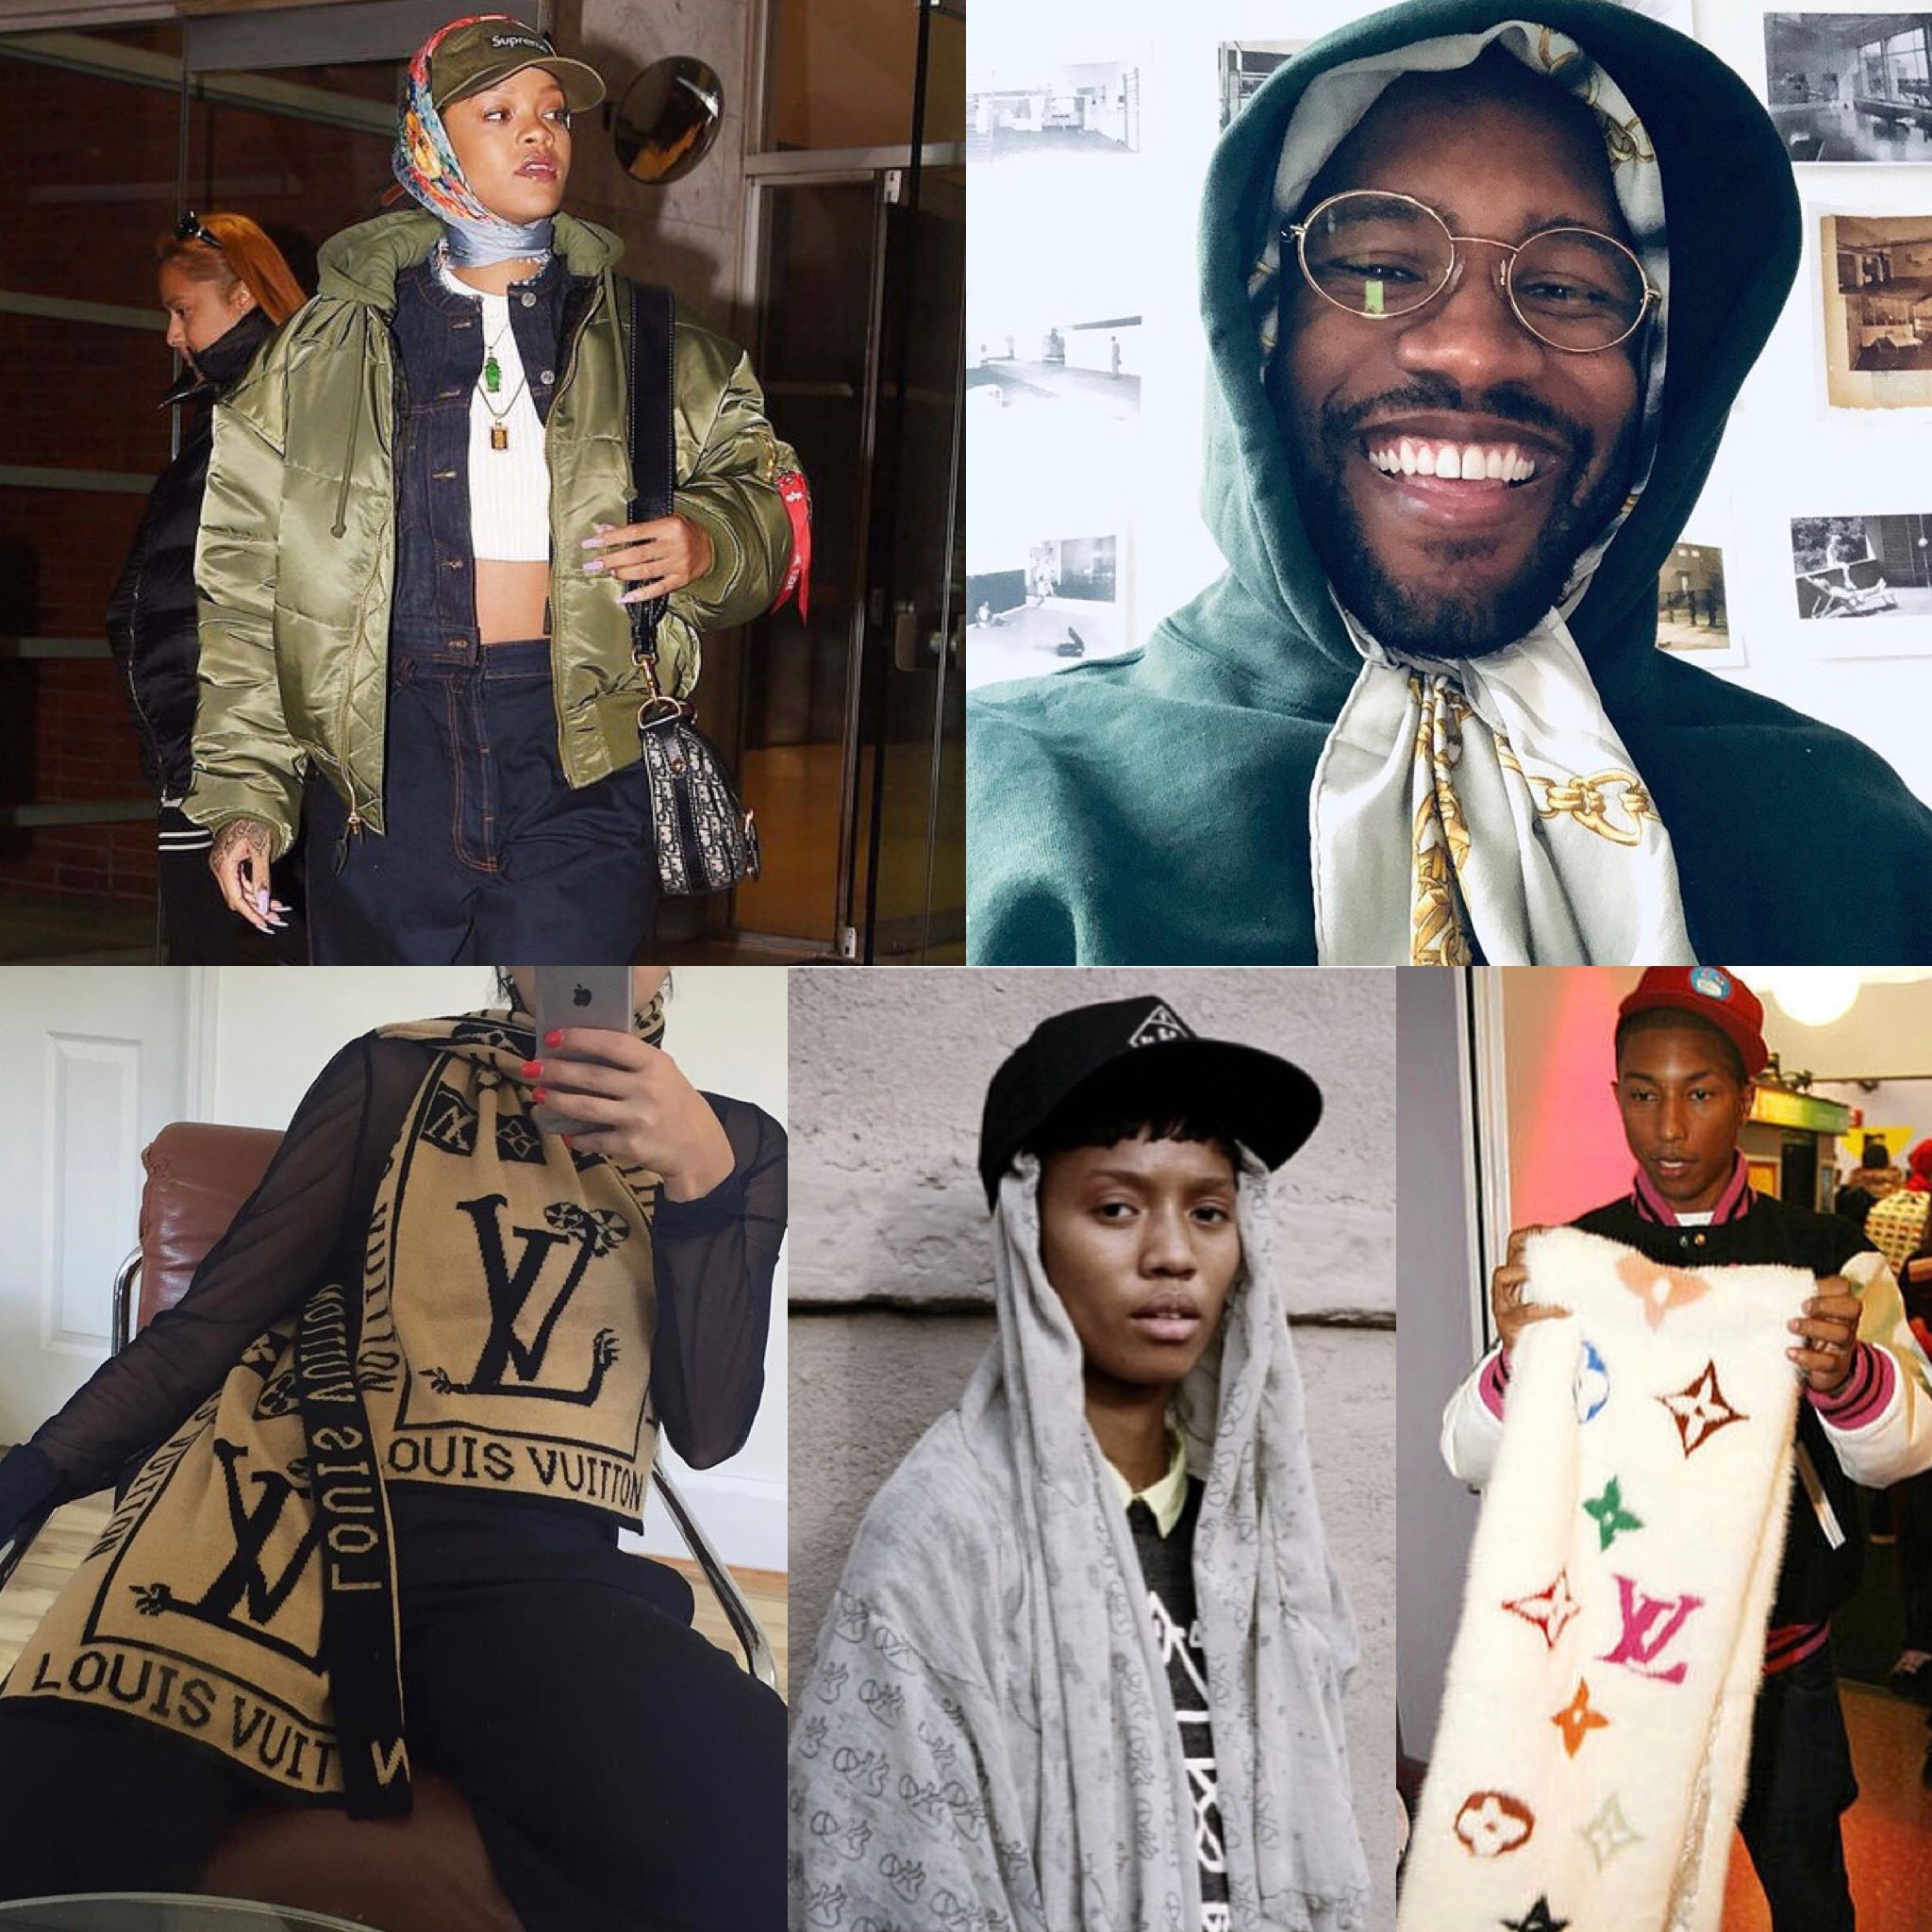 Top Left:   Rihanna  wearing a scarf on top of her Supreme cap  Top Right:   Frank Ocean  wearing a scarf under his hoodie  Bottom Left:  Streetwear star,  Ava Nope   Bottom Middle:   LG scarf  worn in Streetwear shoot  Bottom Right:   Pharrell  admiring a long mink scarf